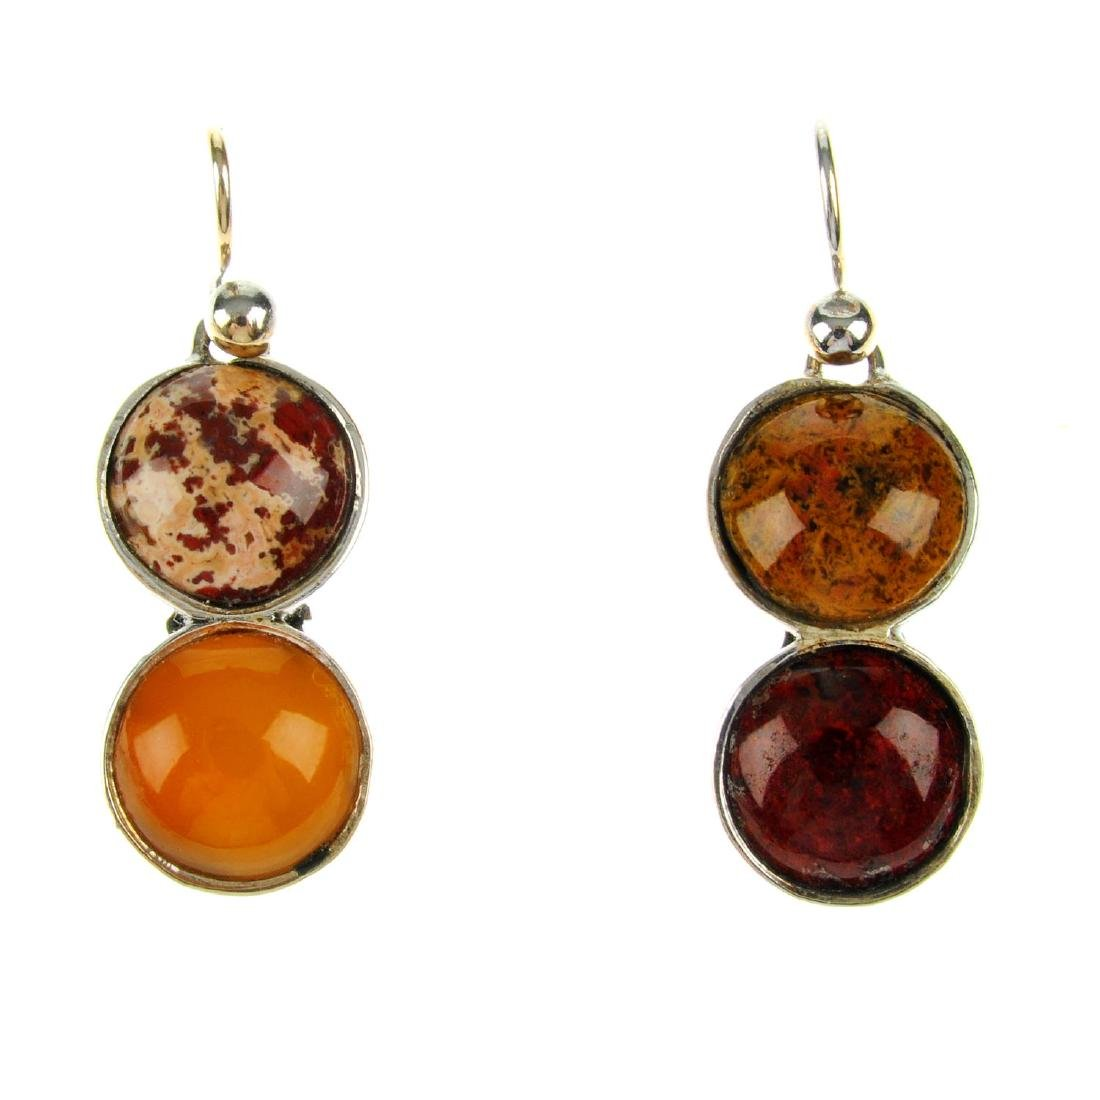 An agate ring and earrings. The ring designed as six